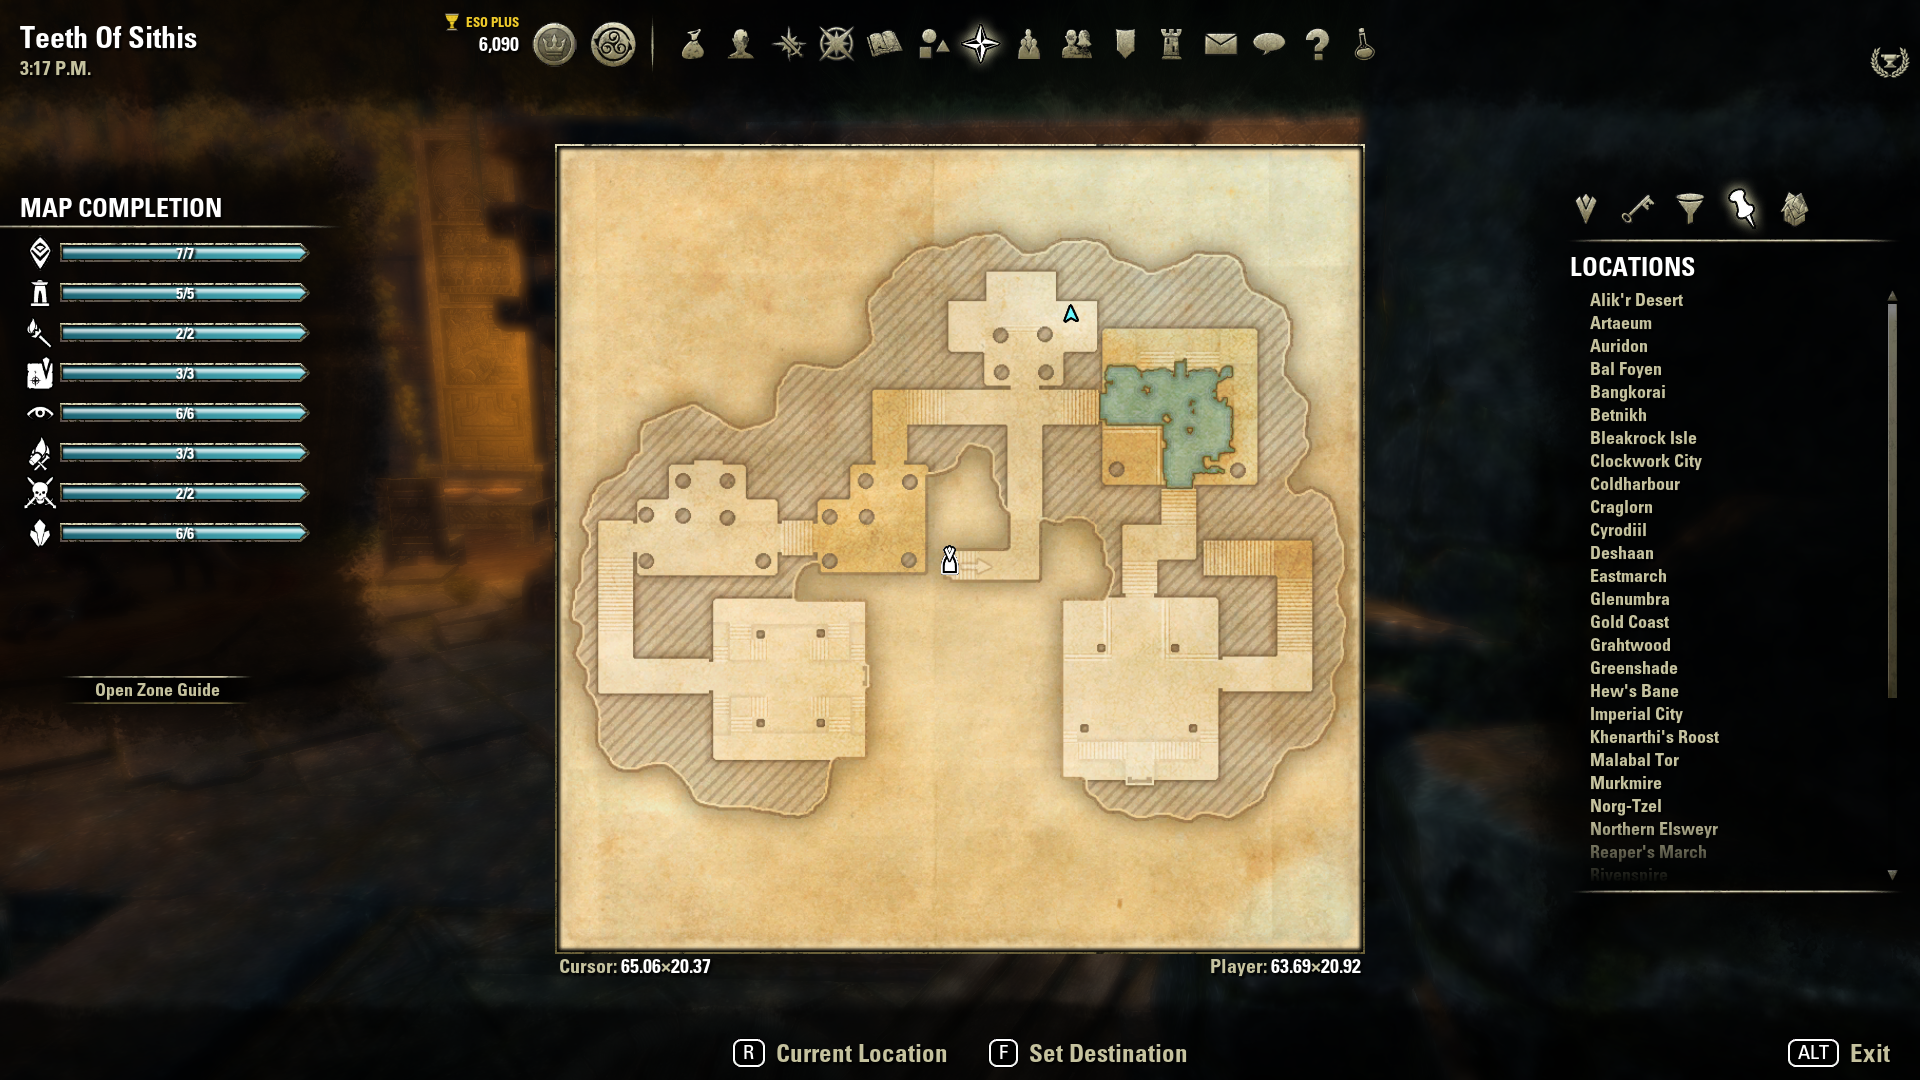 northern elsweyr map completion